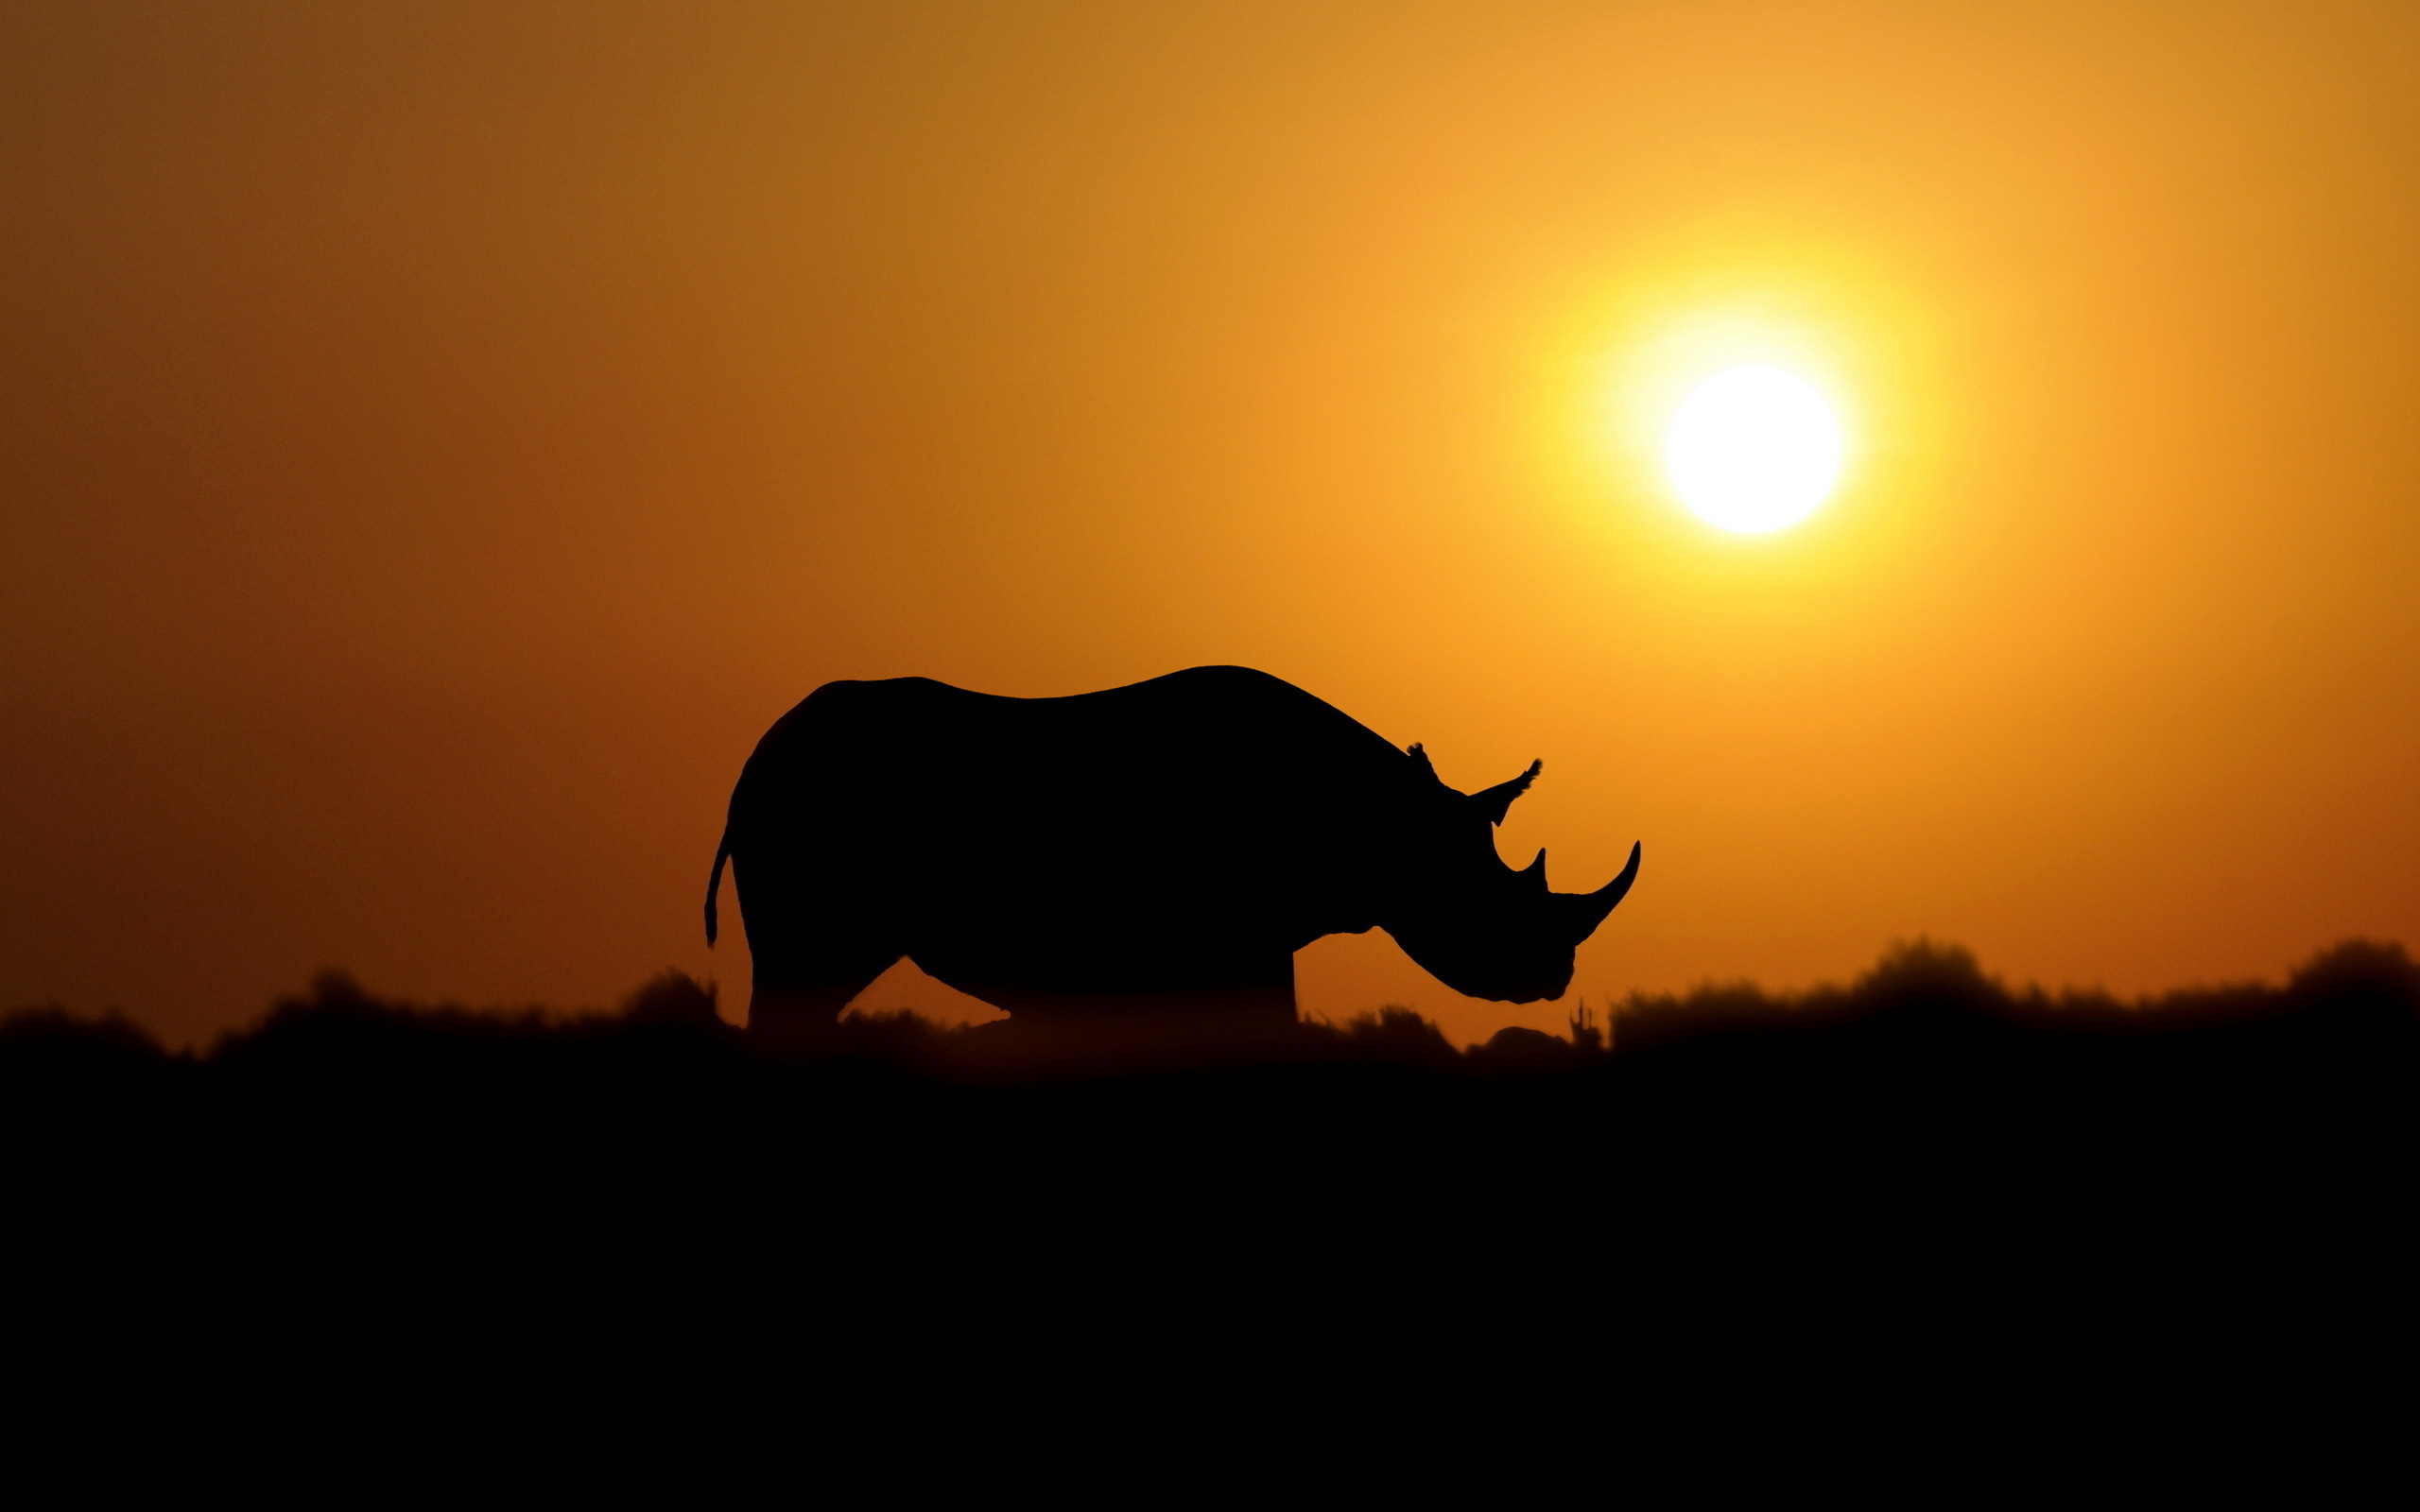 Sunset rhino